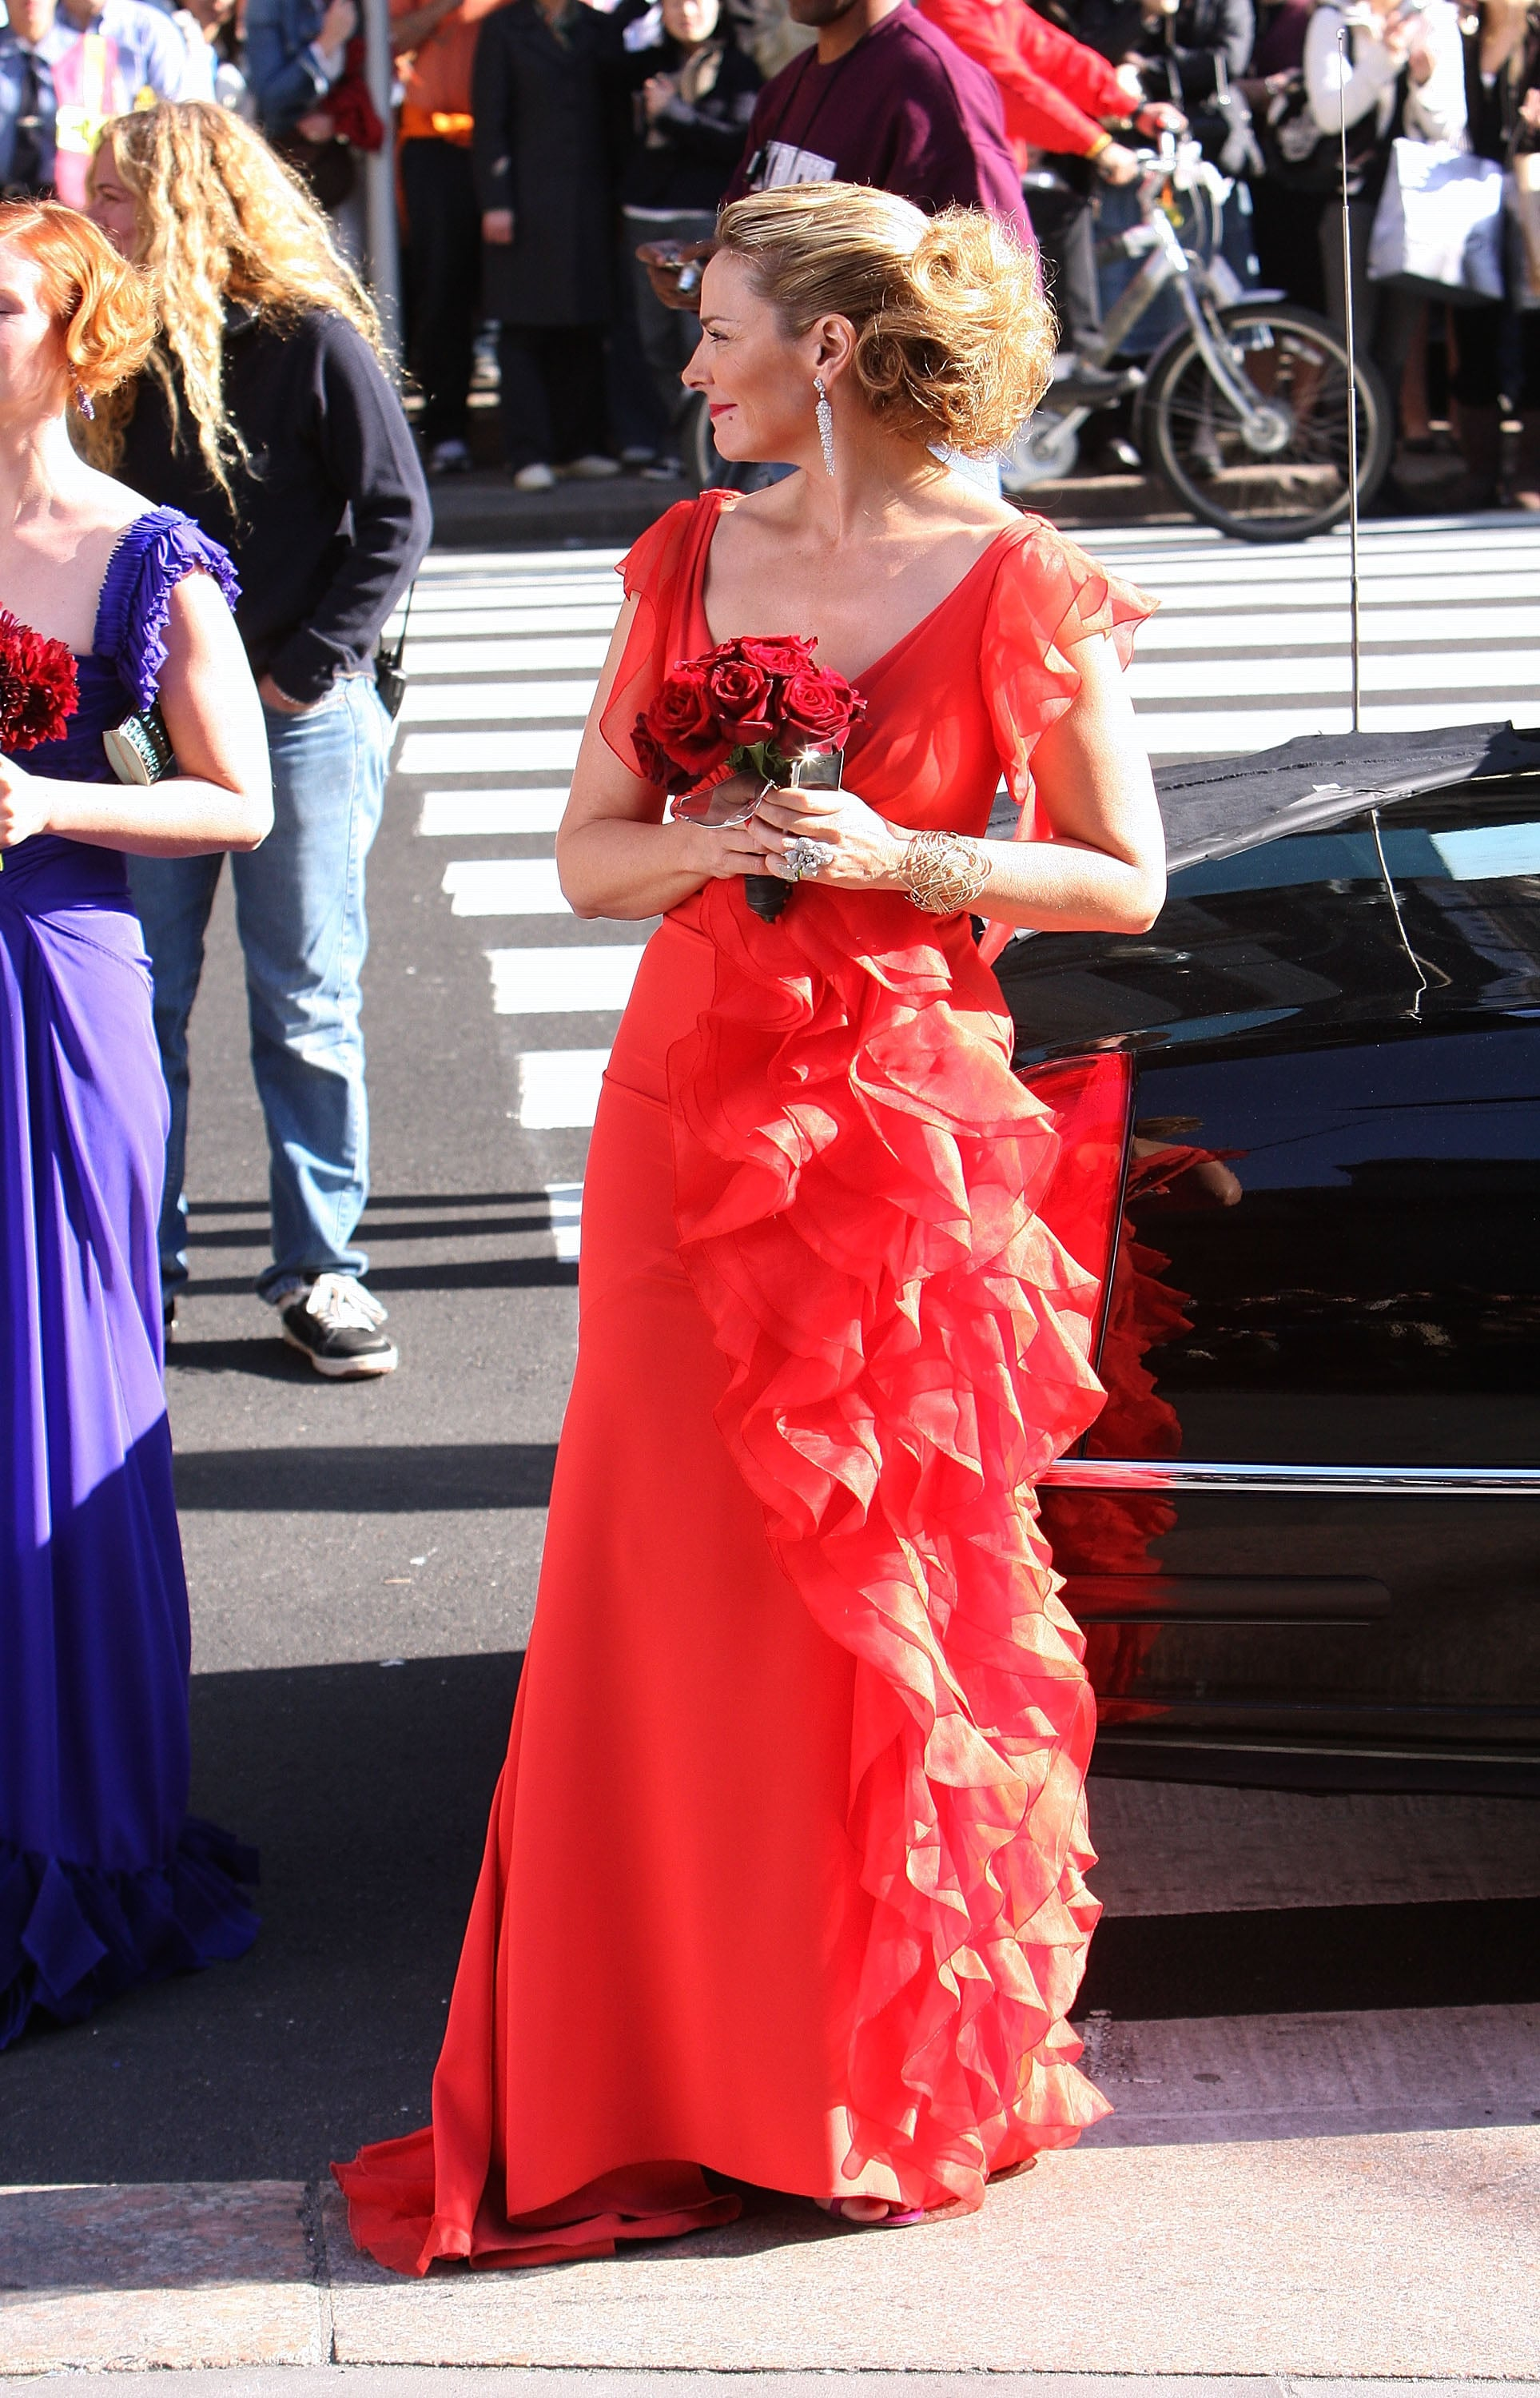 En route to Carrie's disastrous would-be wedding, Samantha is quite the head-turner in a ruffled red confection. Just look at her train!